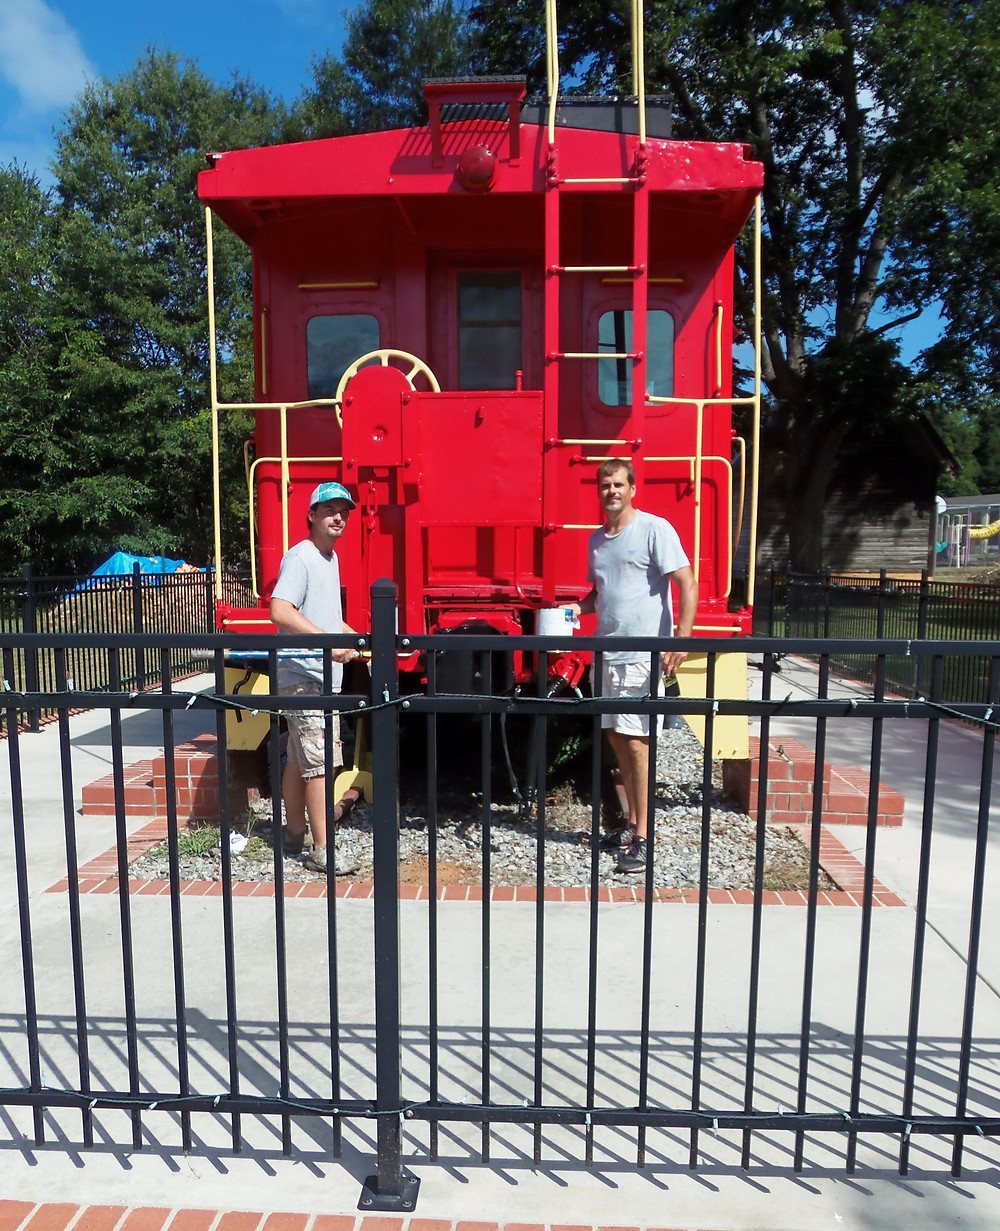 Austin McCurry and Jeremy Creswell of #1 Painting posing in front of the freshly painted caboose.